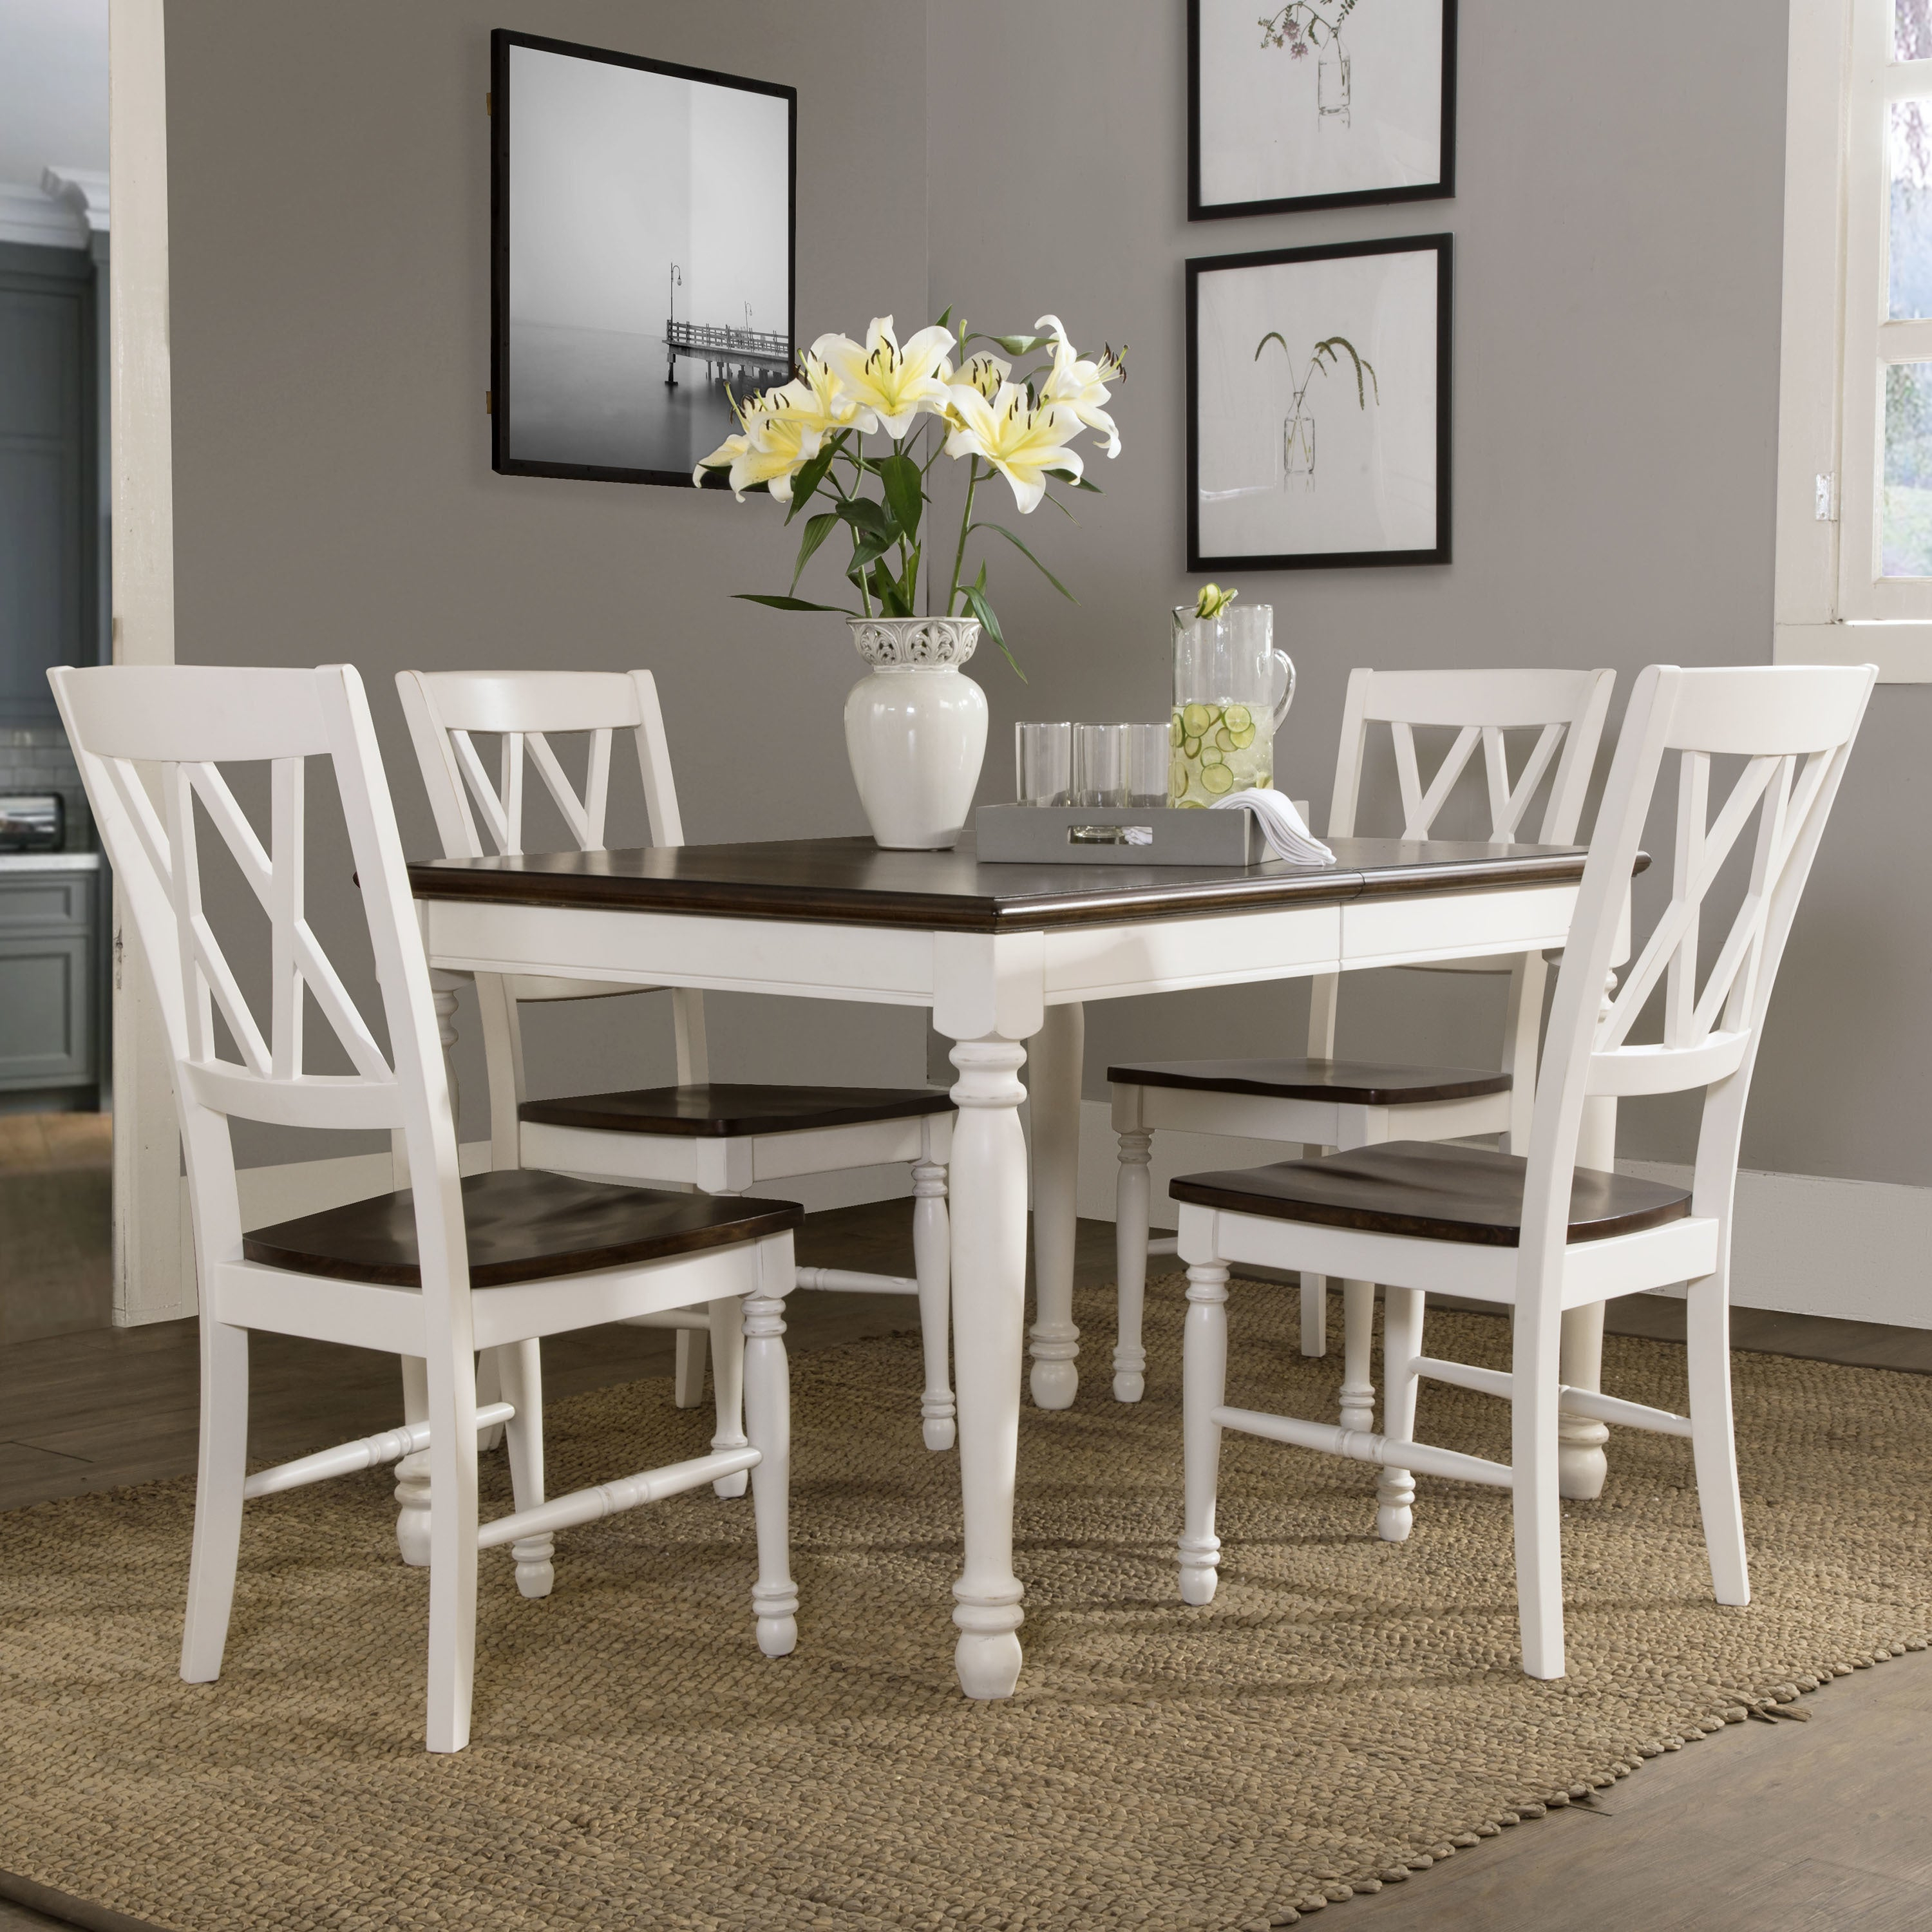 Shelby 5 Piece White Dining Set Regarding 2017 5 Piece Dining Sets (View 13 of 20)